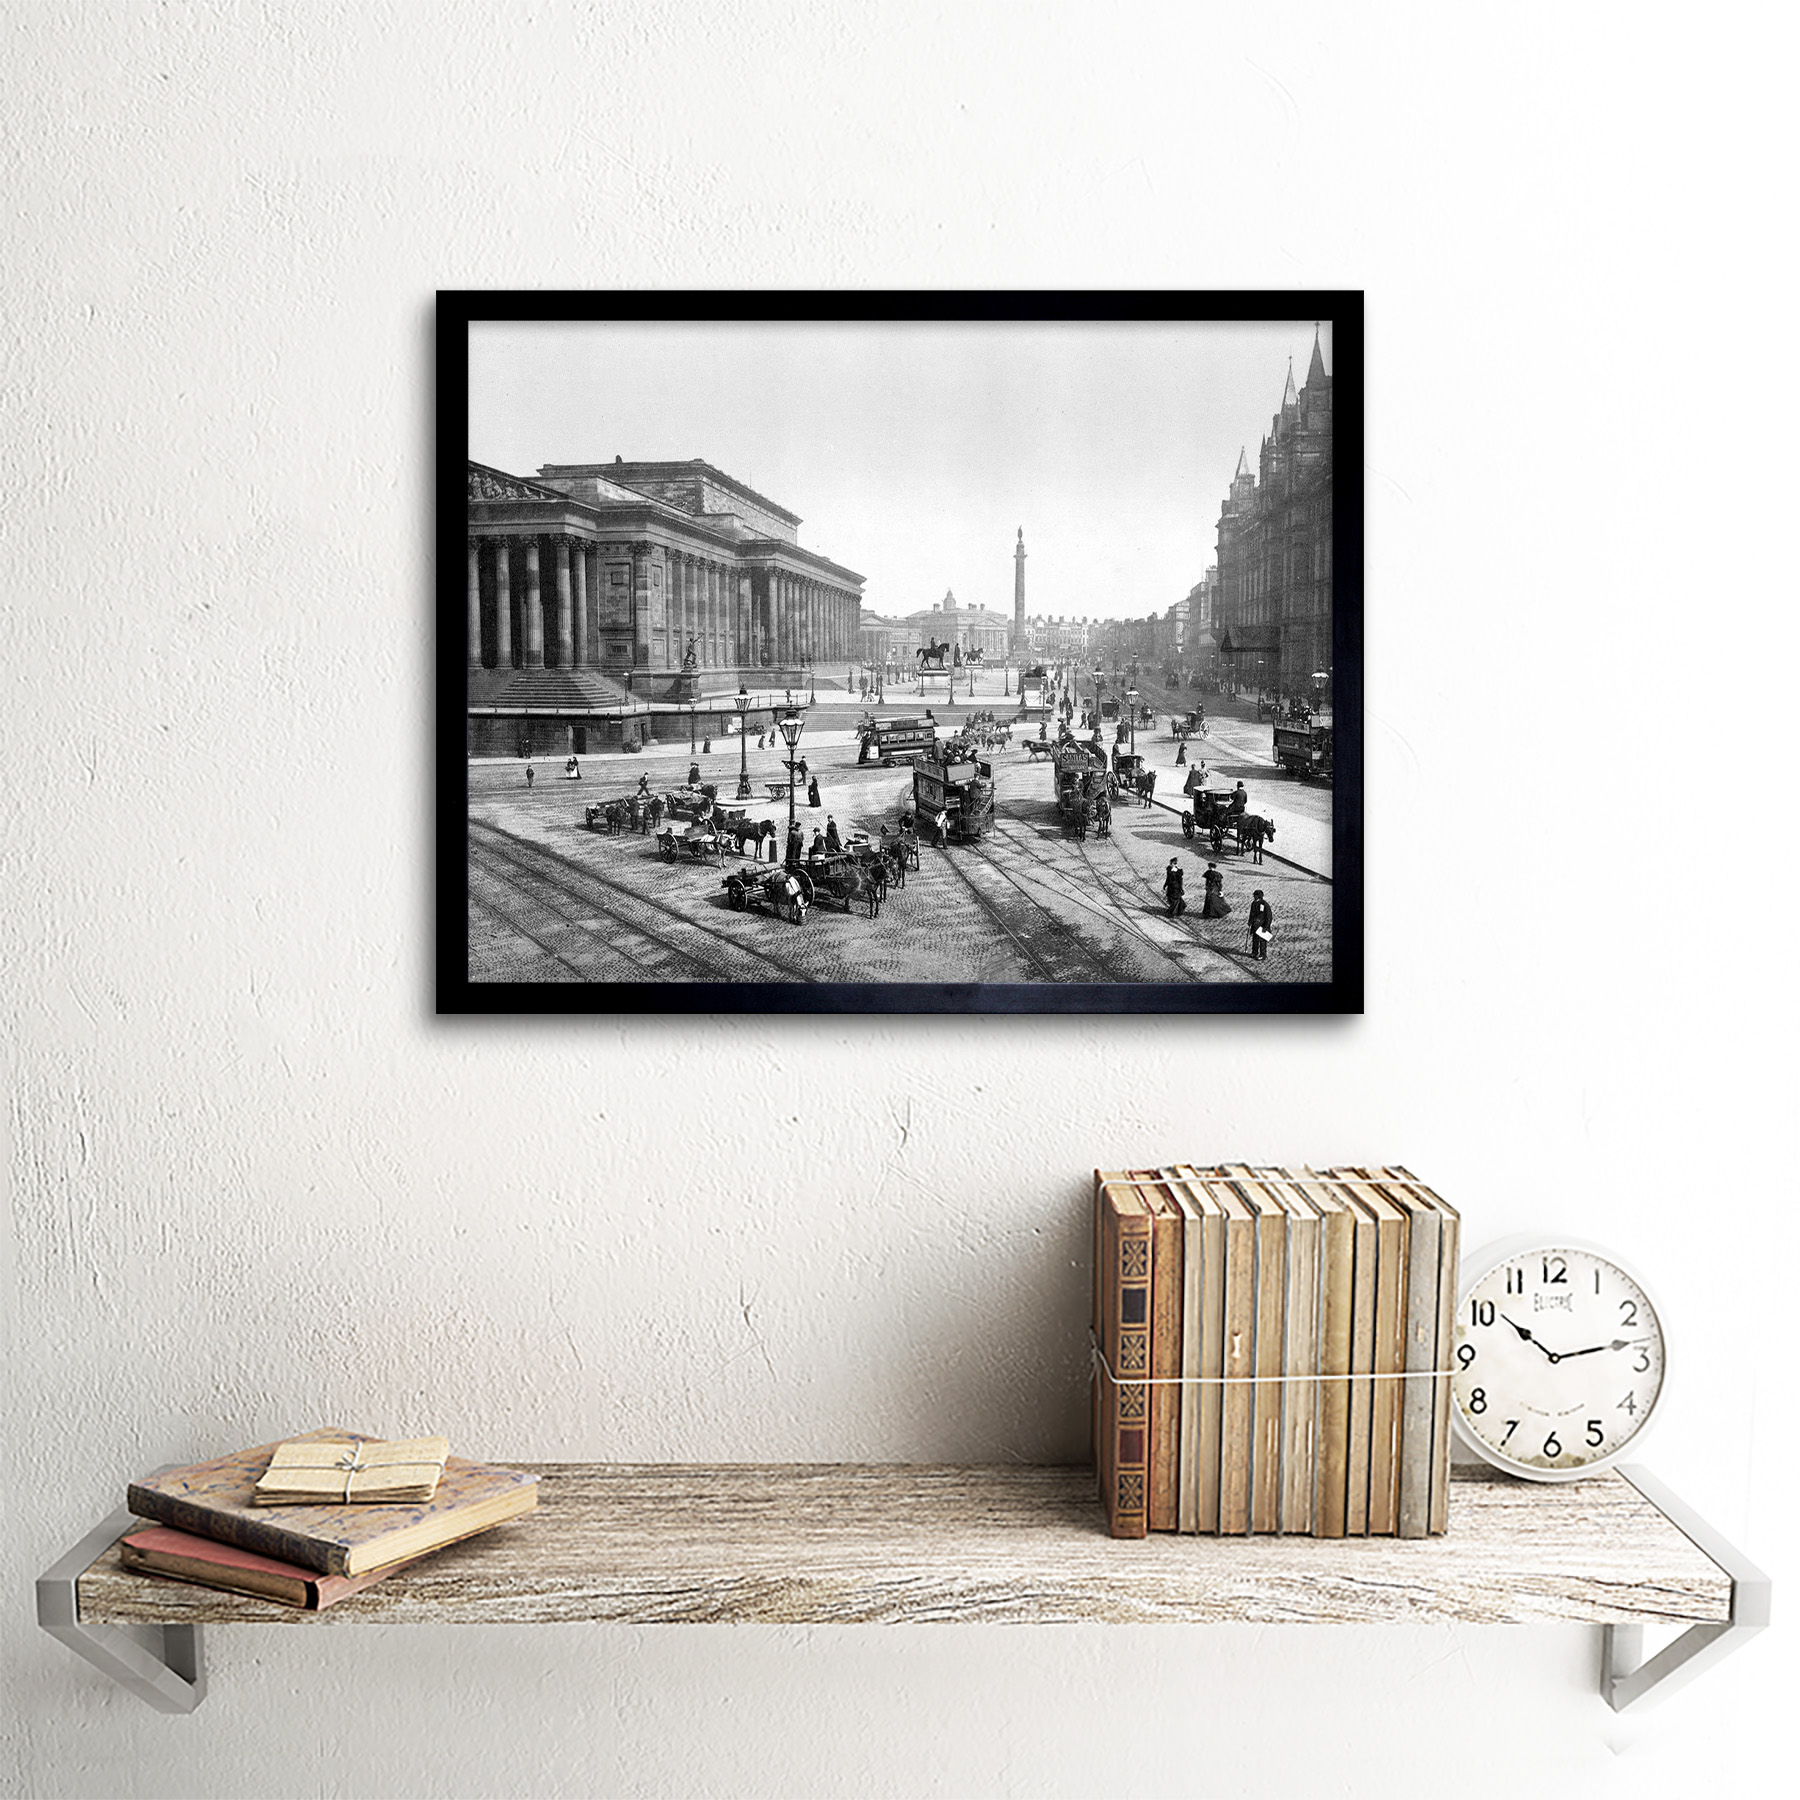 George/'s Hall England Old Bw 12X16 Inch Framed Art Print Liverpool St